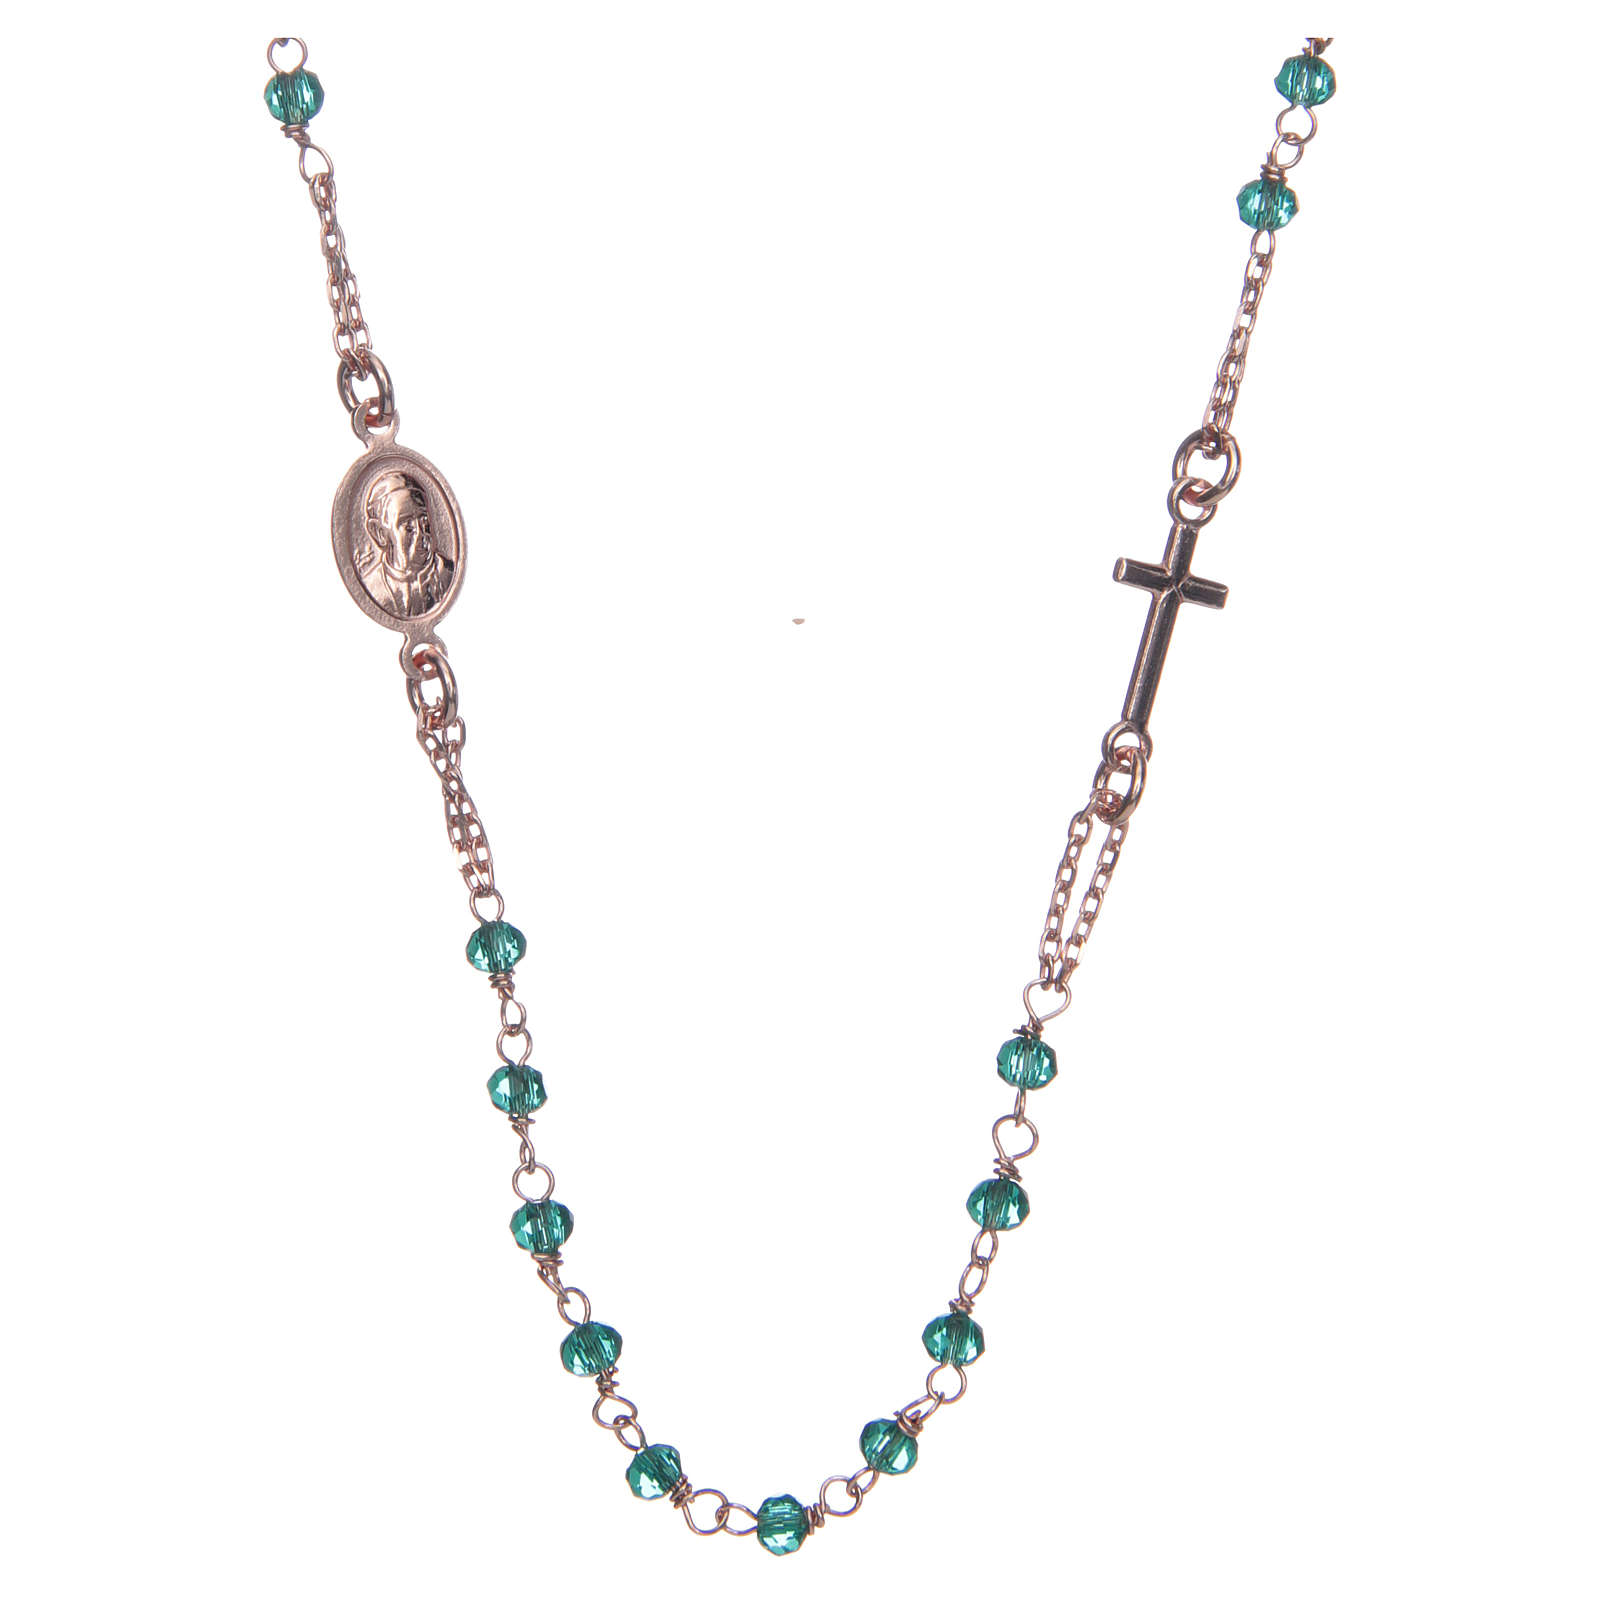 Rosary AMEN Necklace green crystals silver 925, Rosè finish 4